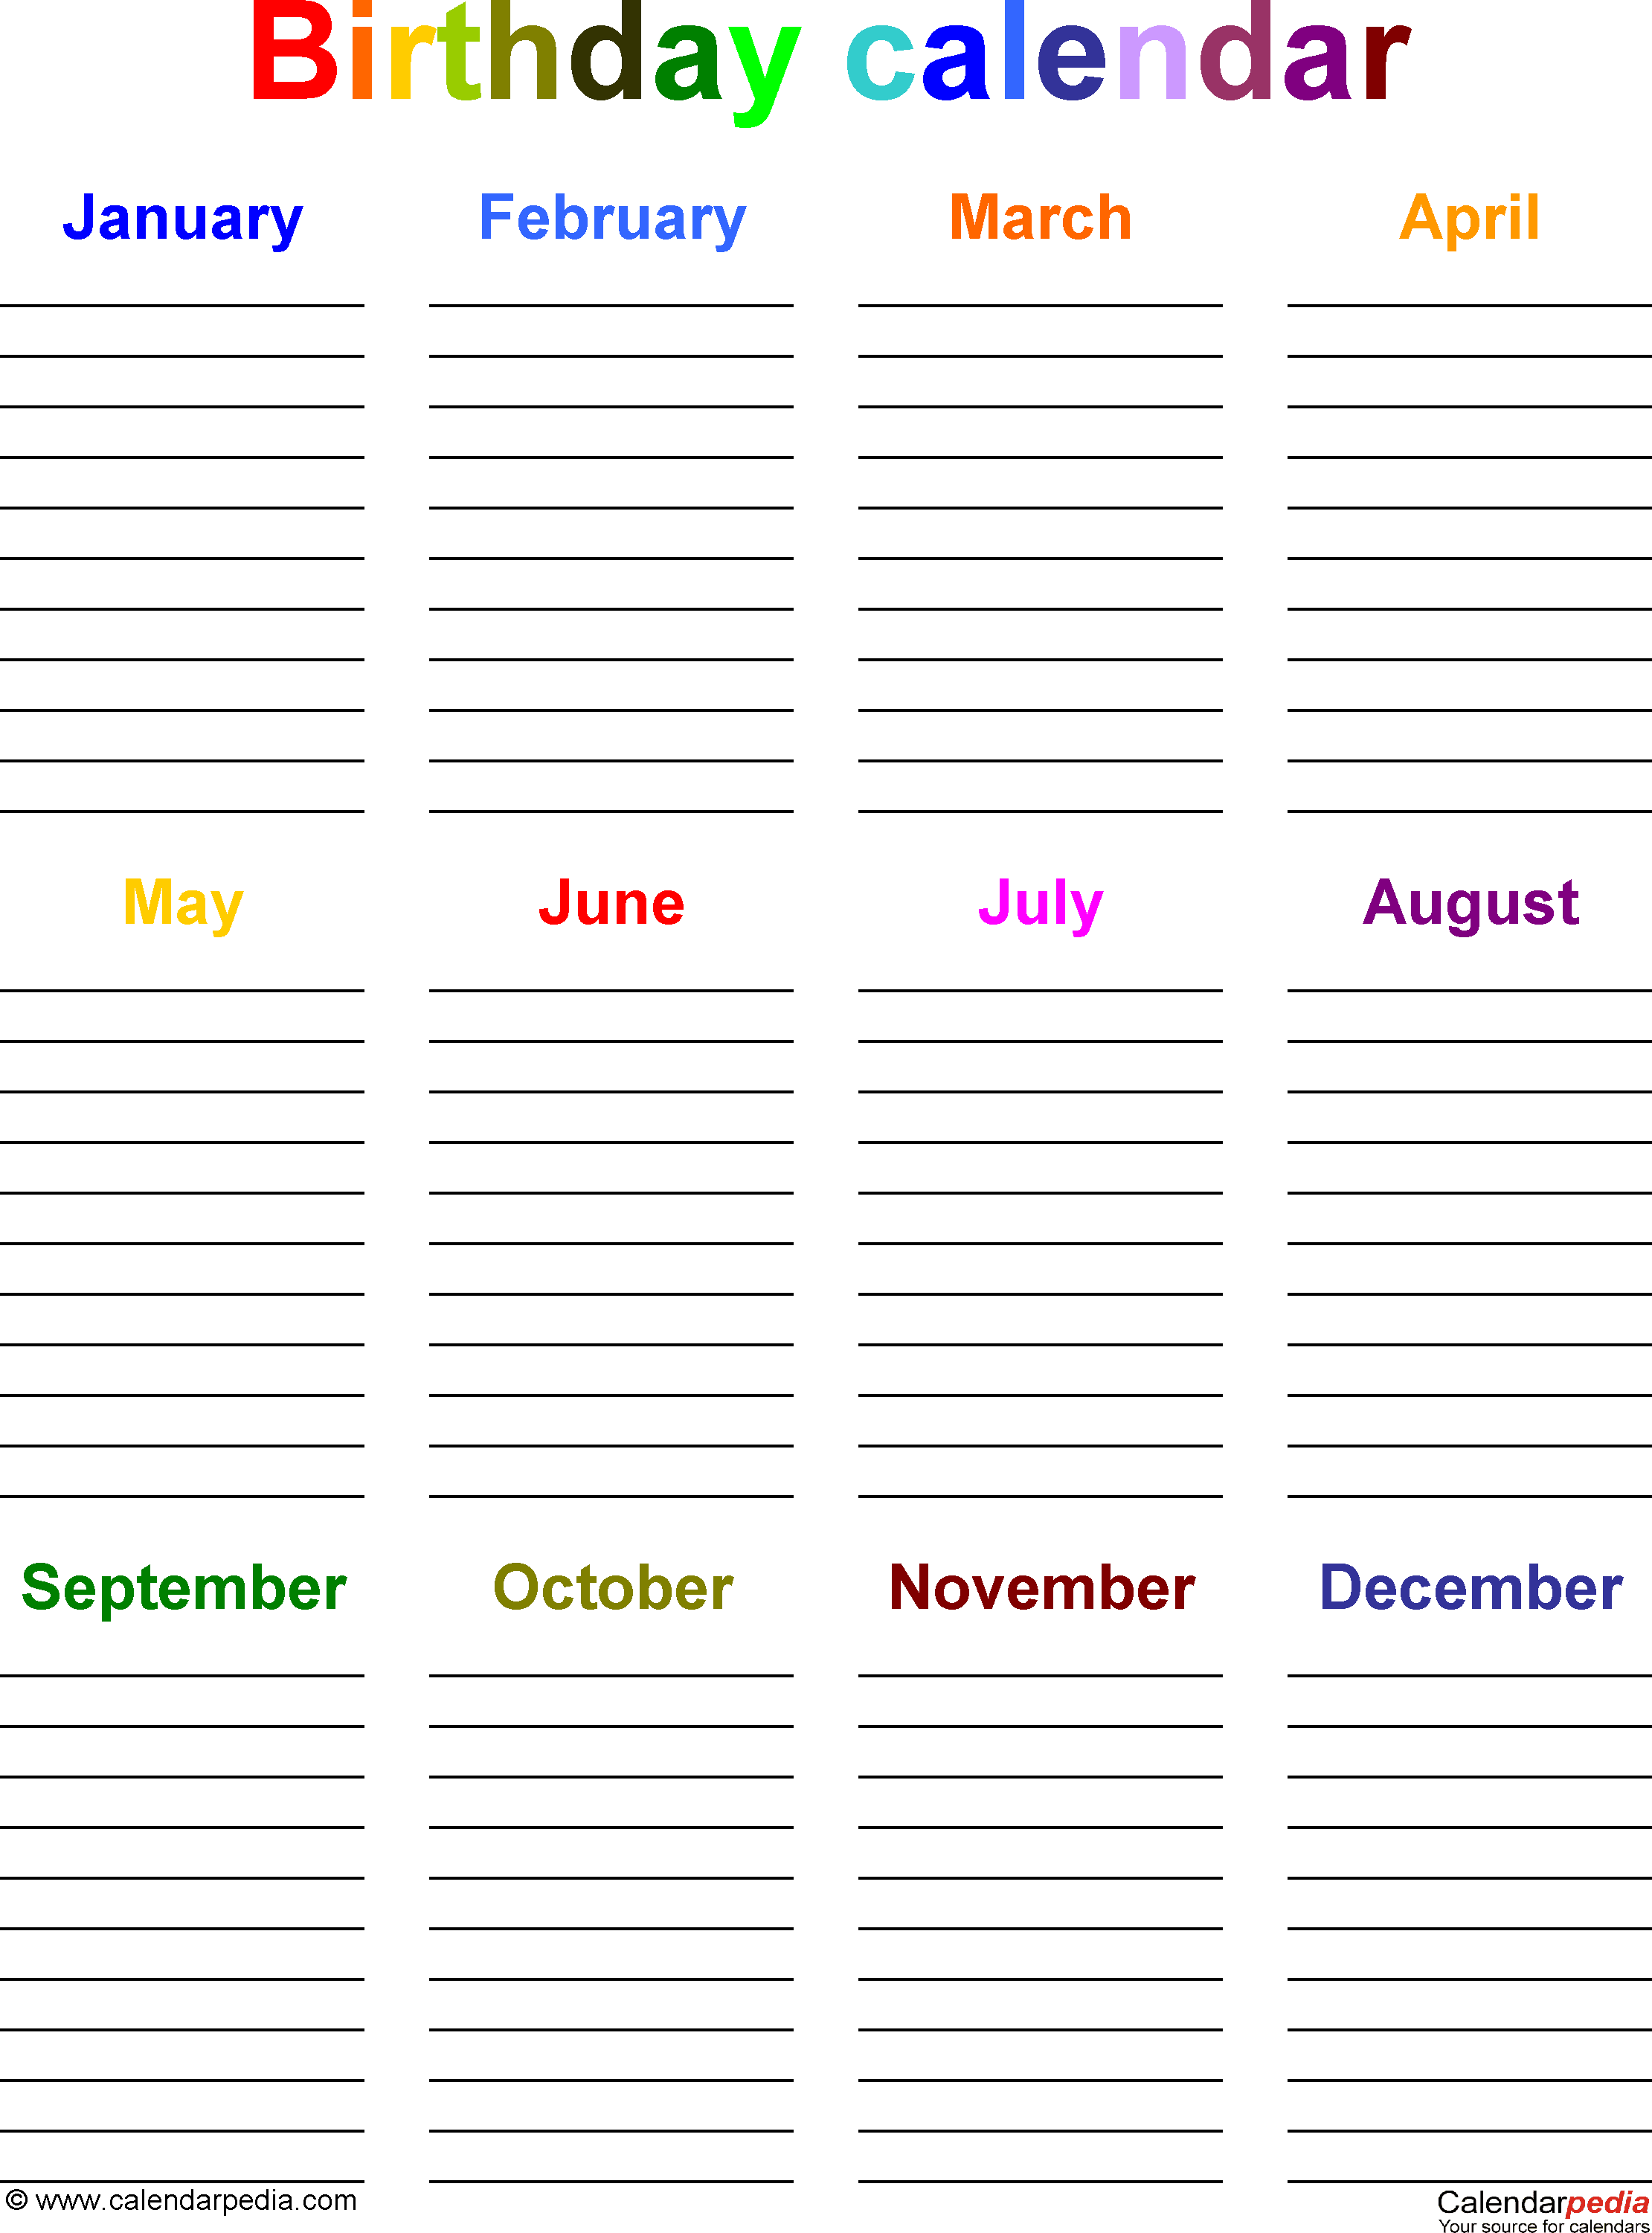 Birthday List Template Free Mesmerizing Template 5 Pdf Template For Birthday Calendar In Color Portrait .